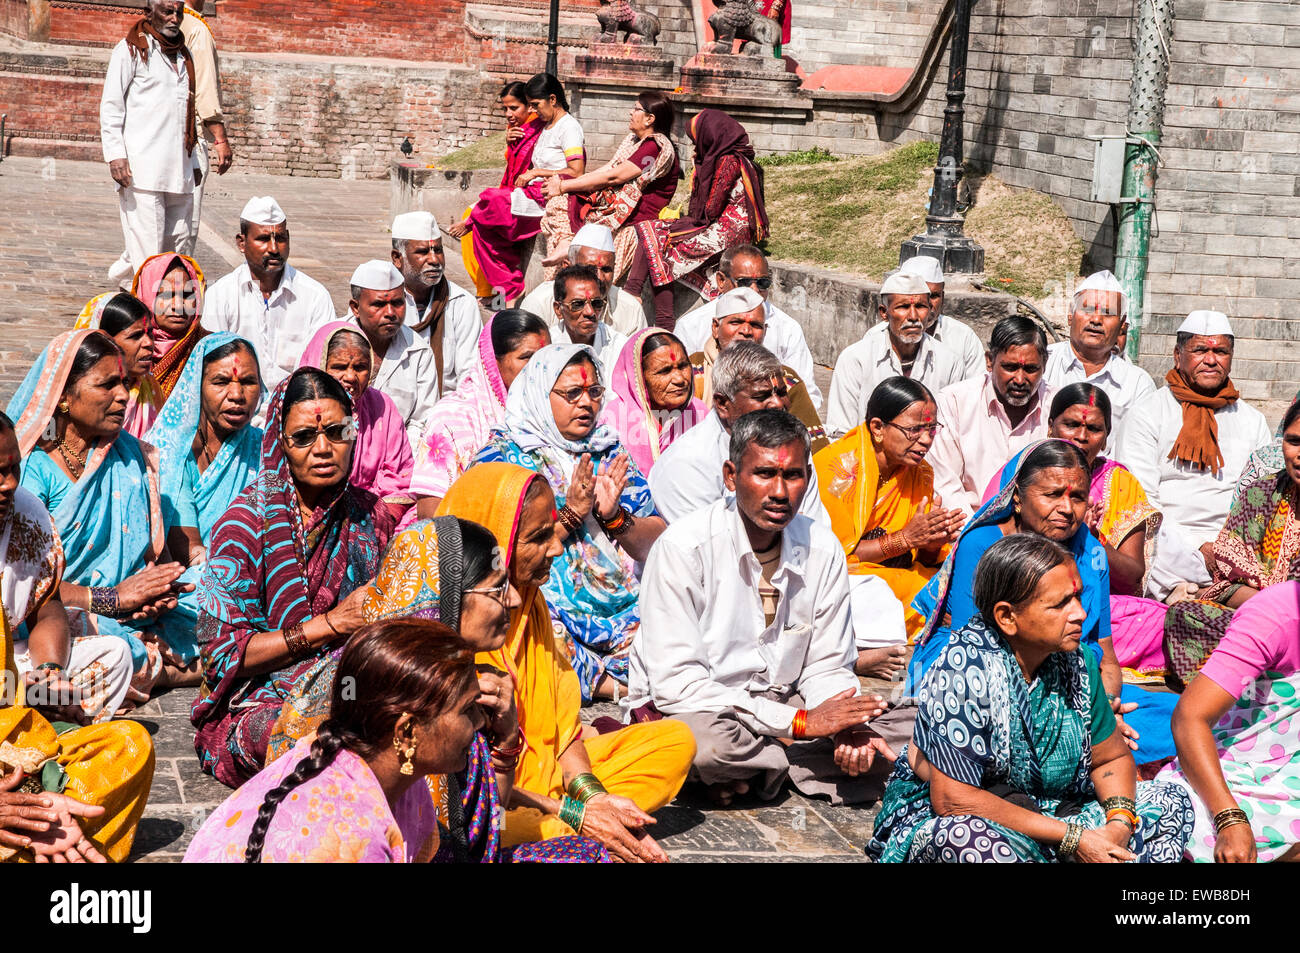 Mourners at a Hindu funeral at Pashupatinath Temple, a Hindu temple located on the banks of the Bagmati River. Kathmandu, - Stock Image